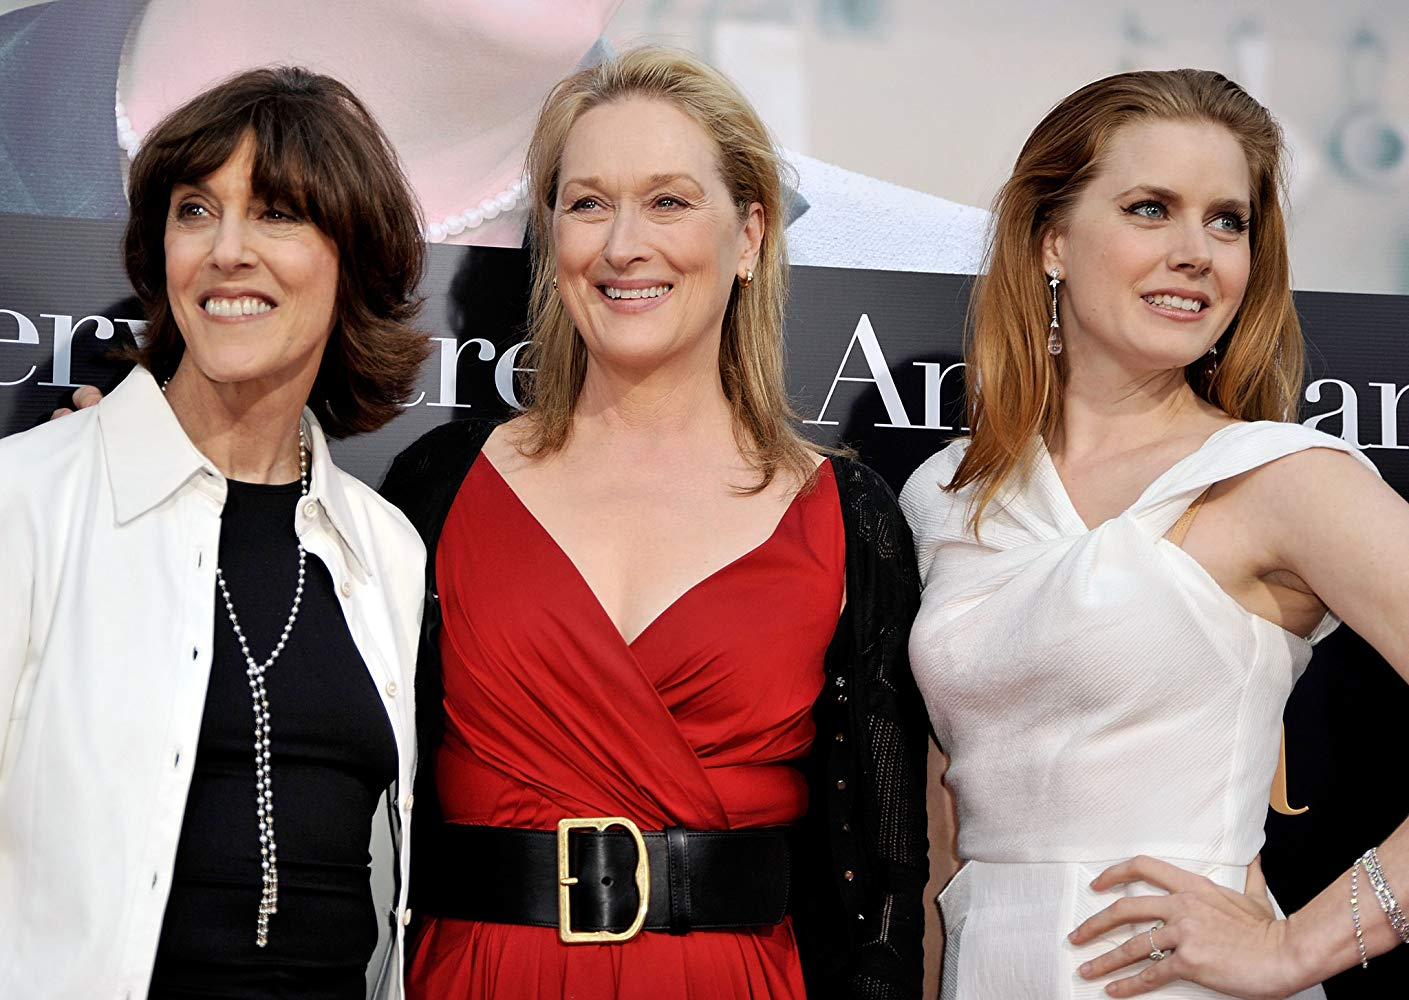 Nora Ephron, Meryl Streep, and Amy Adams at a press event for Julie & Julia (2009).